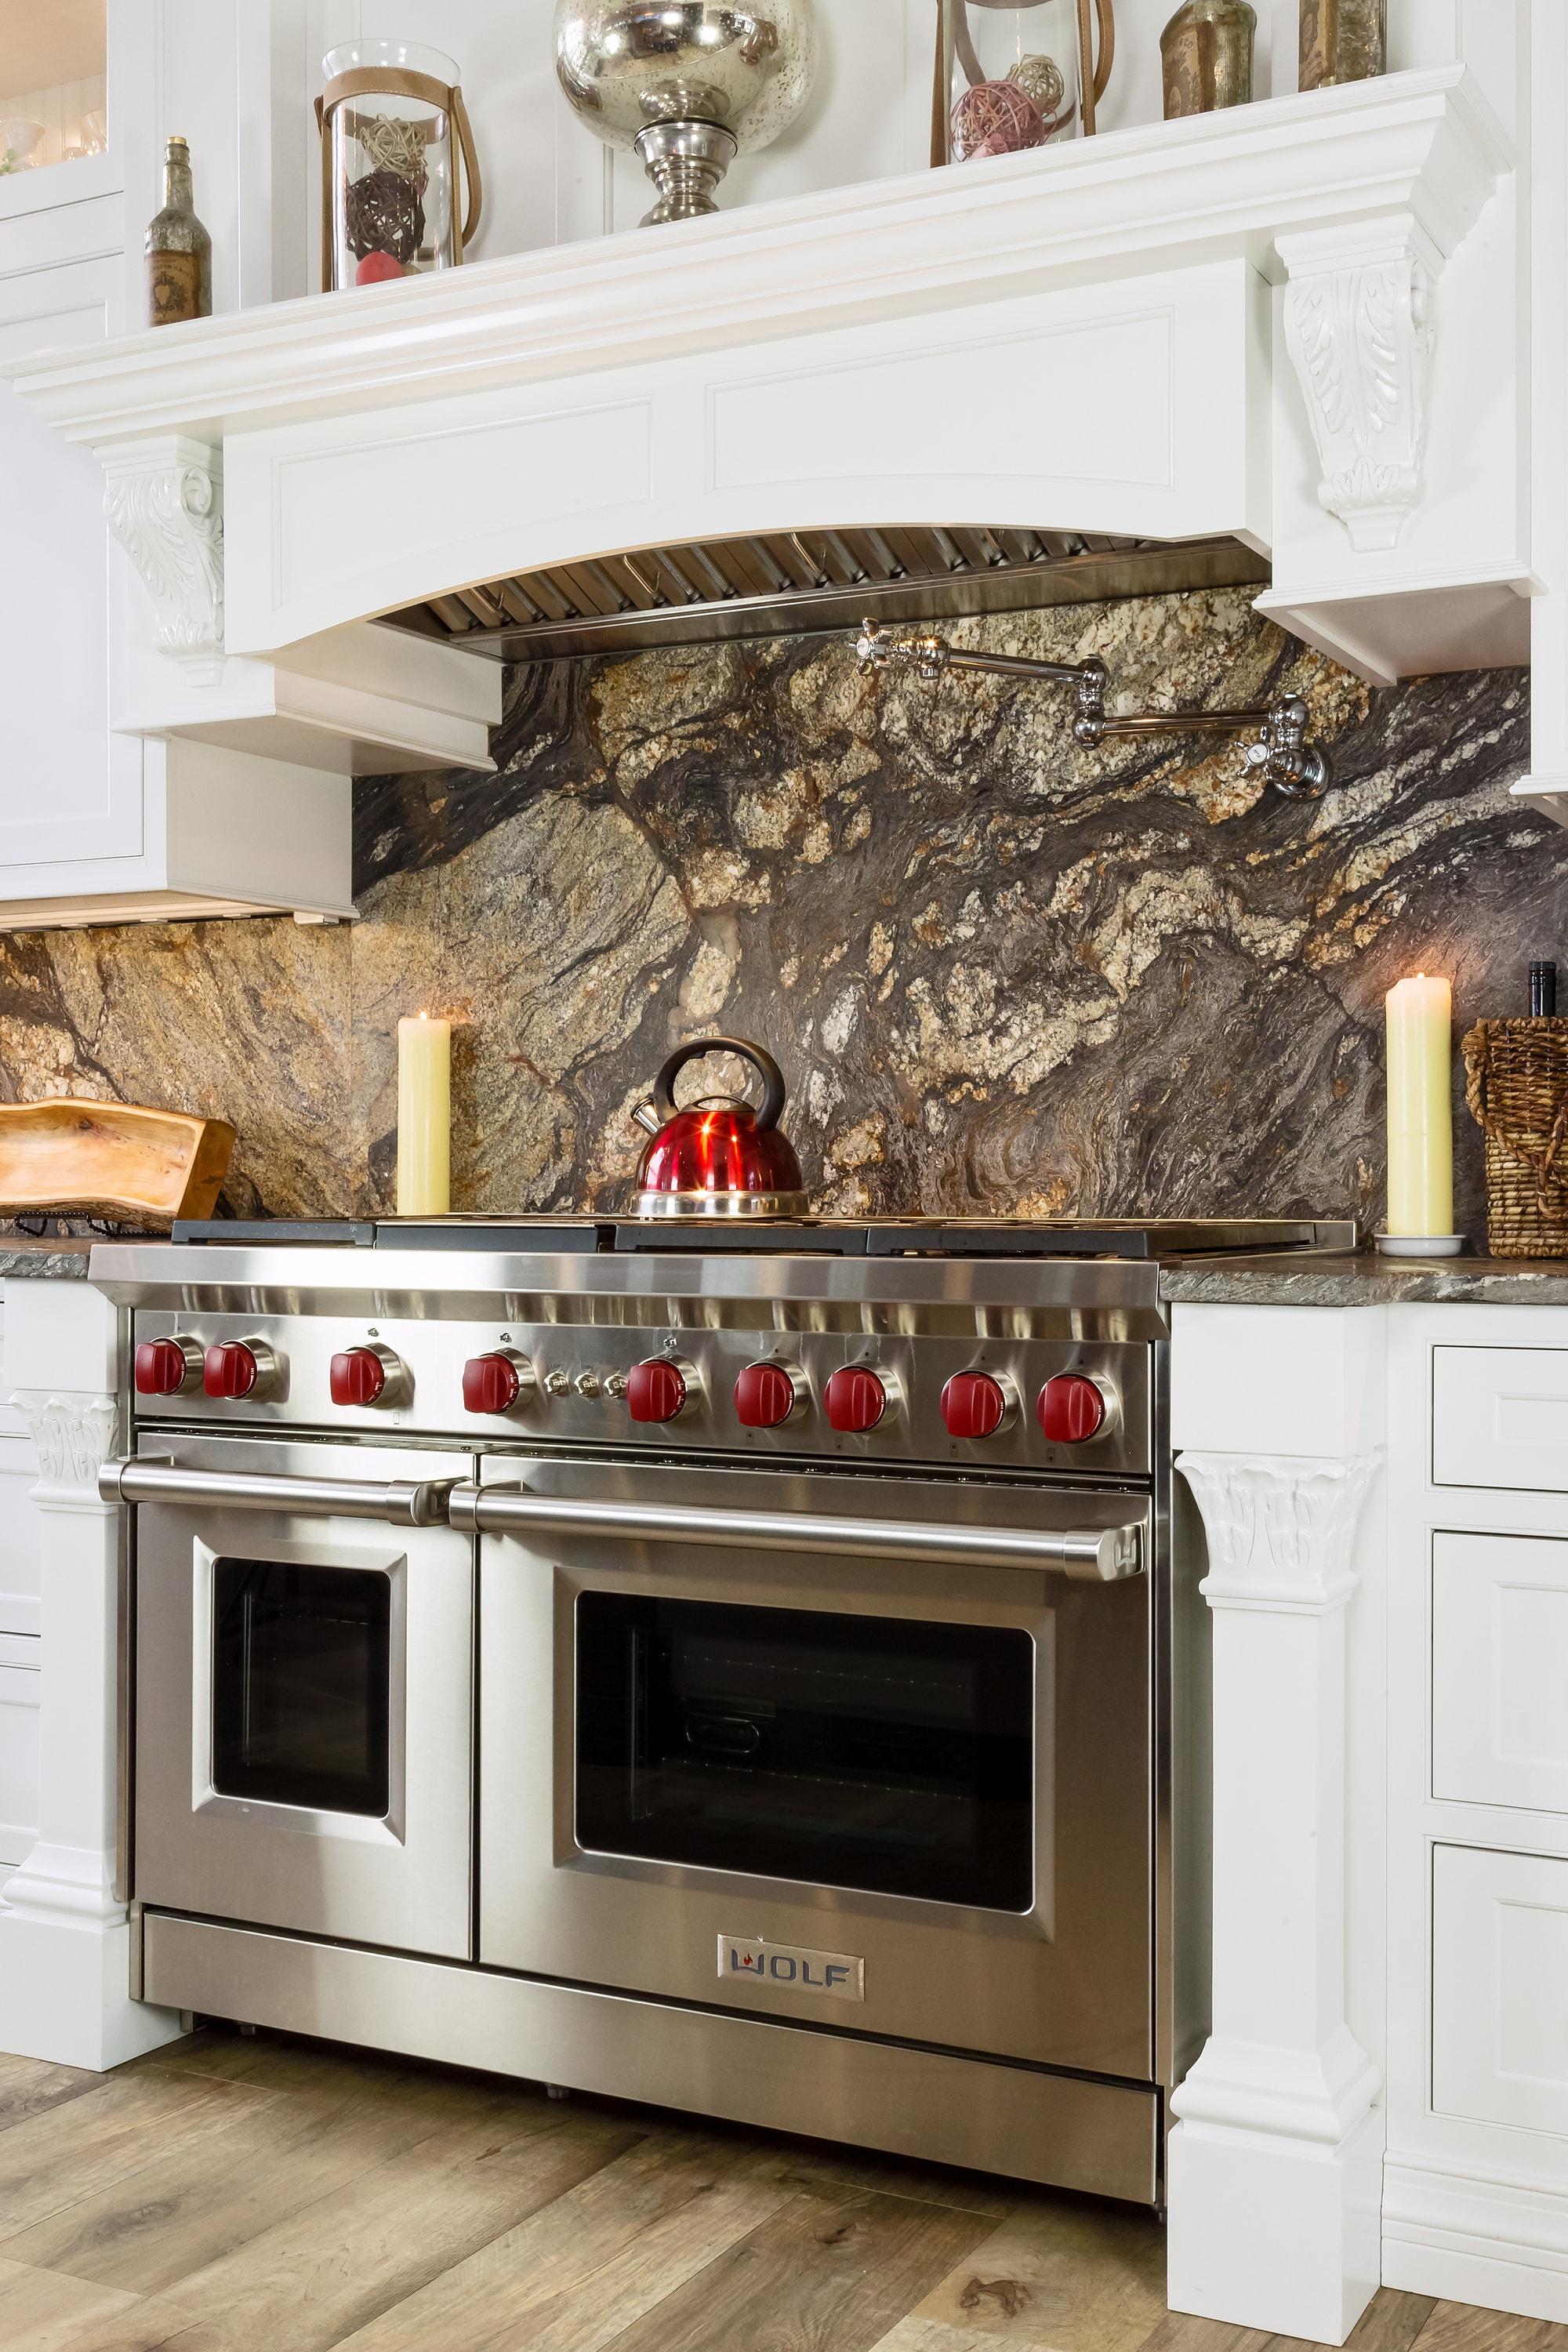 Traditional style kitchen with metallic backsplash